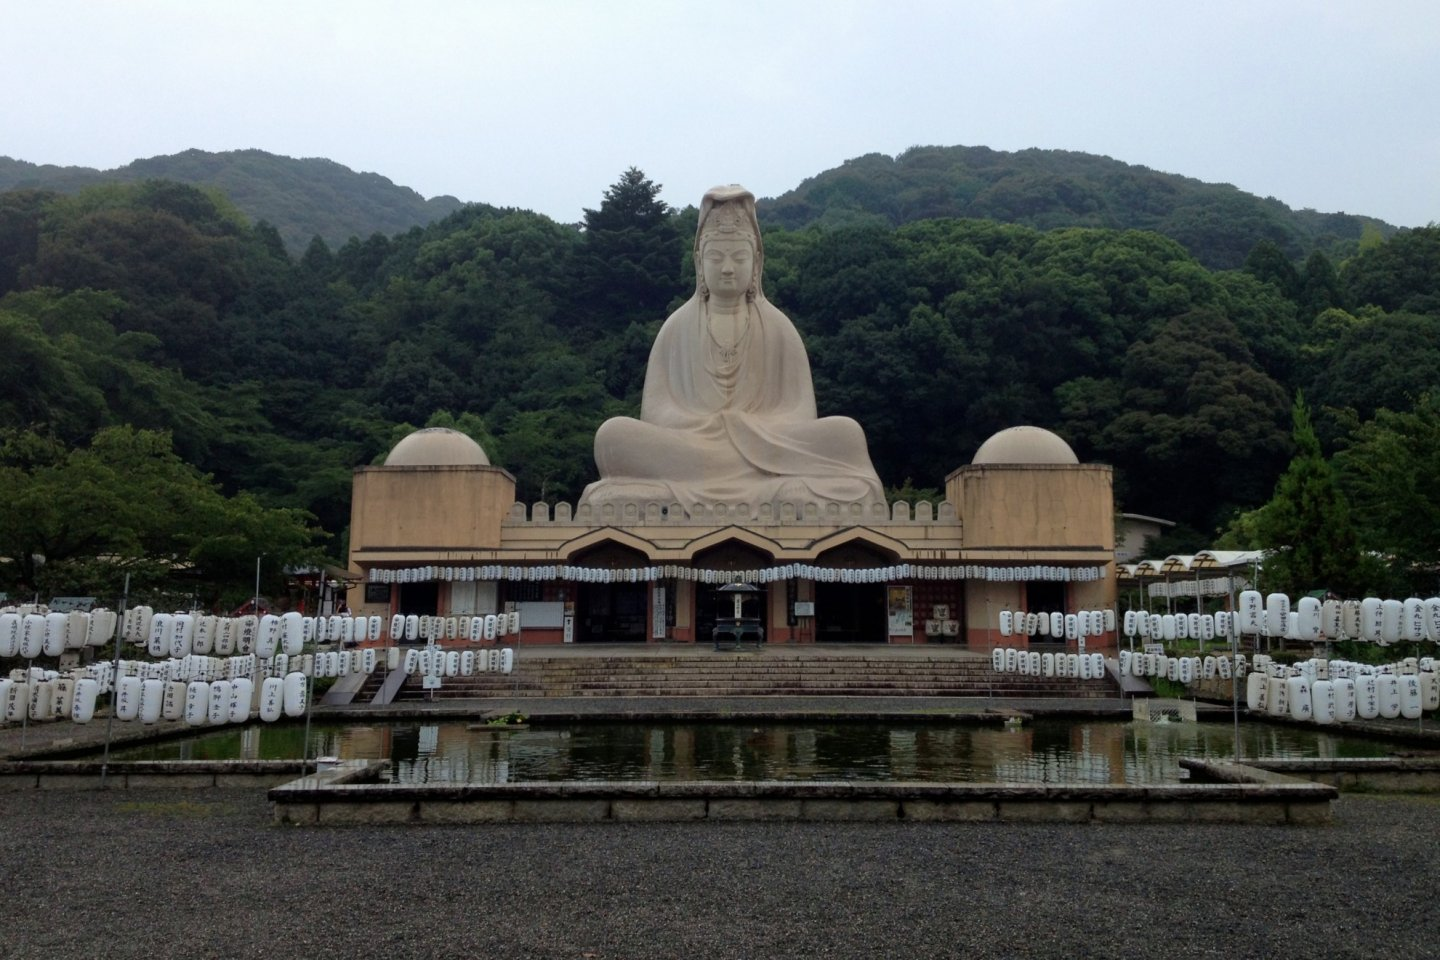 Ryozen Kannon viewed from the entrance.